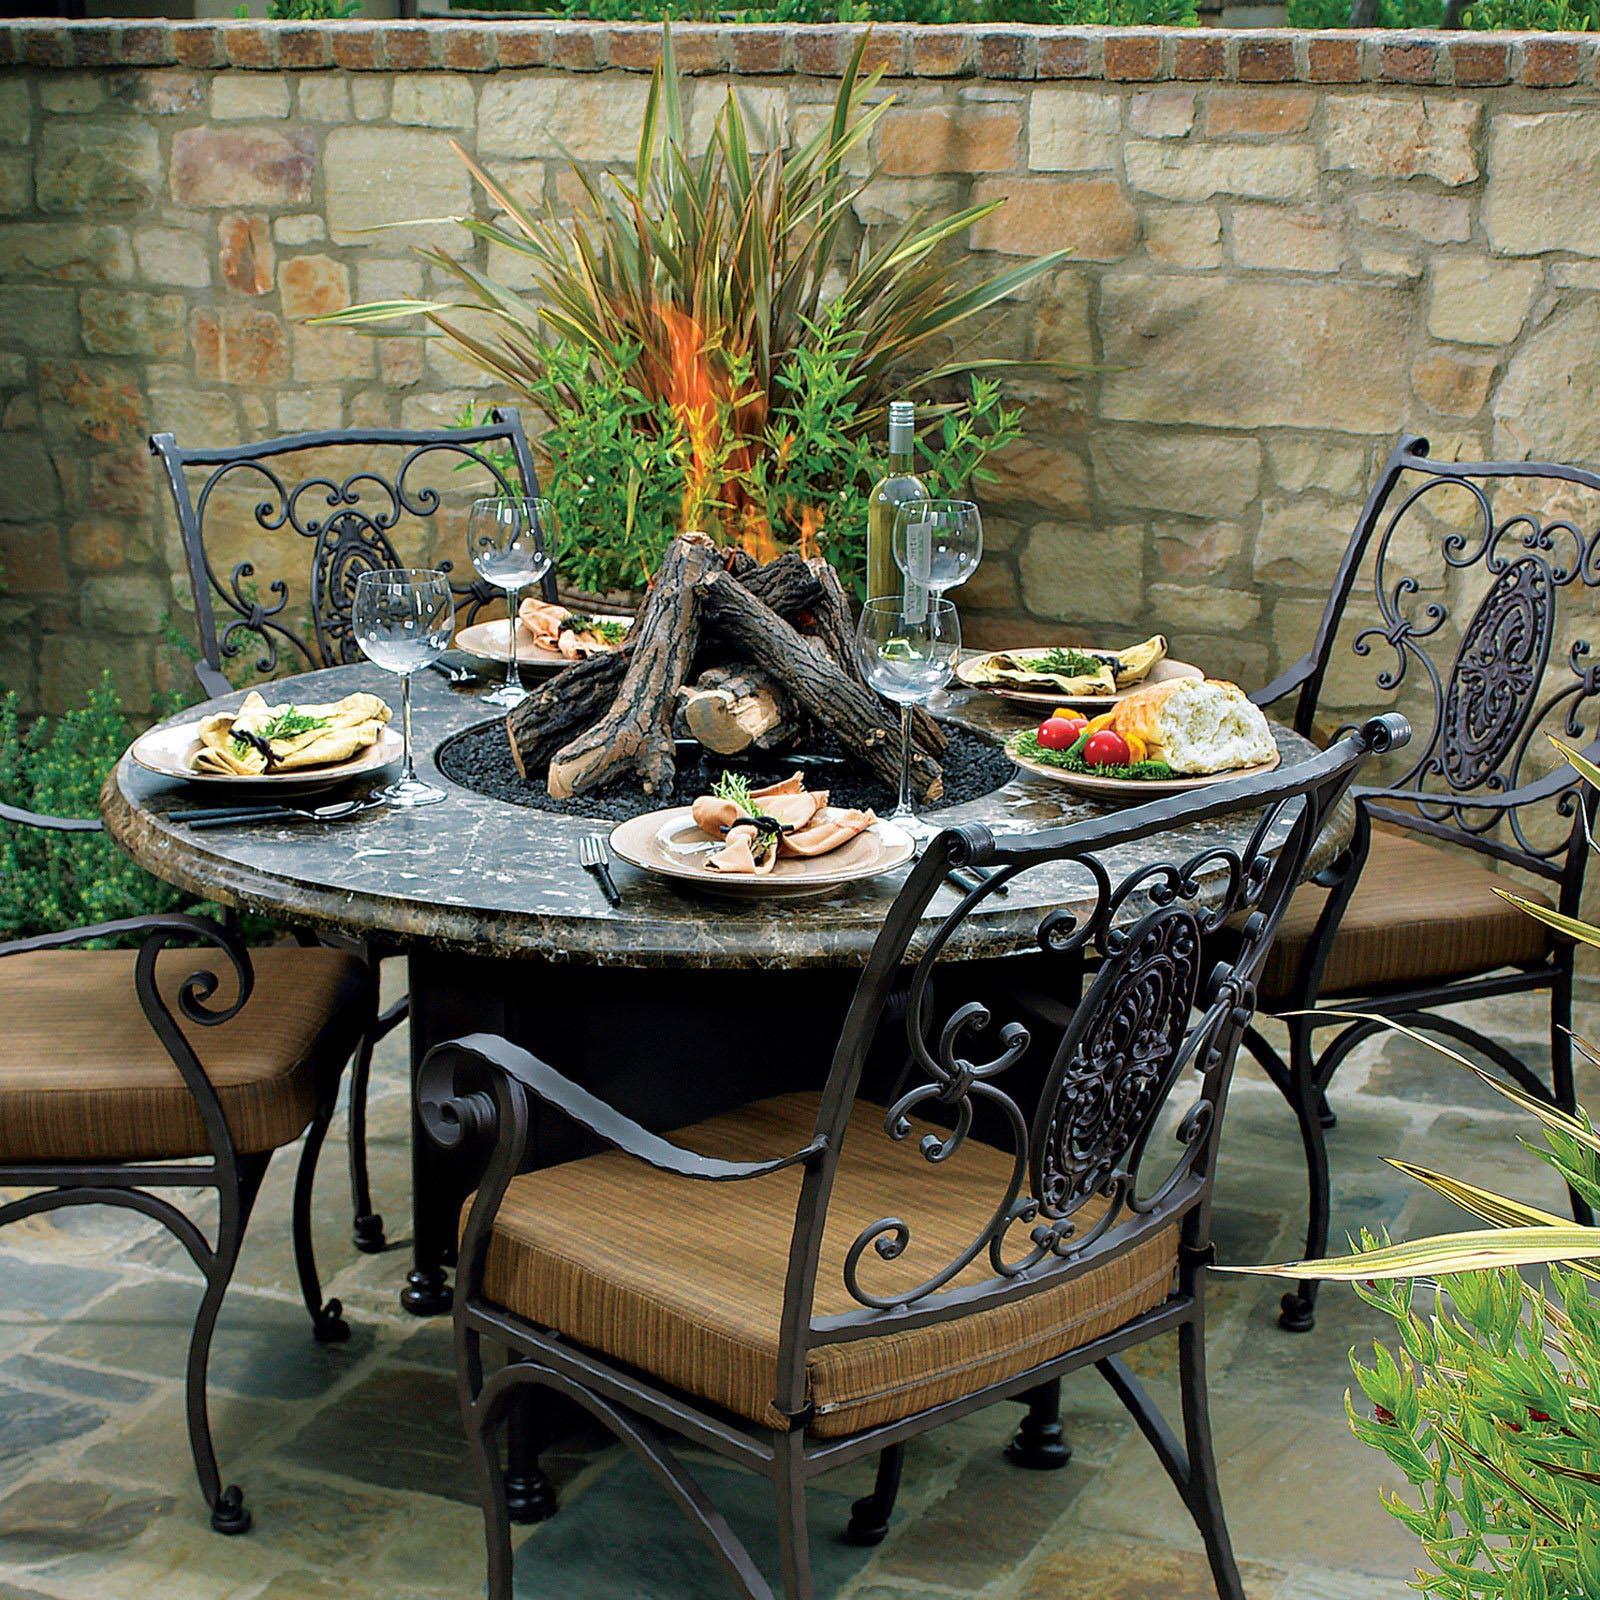 Best ideas about Fire Pit Dining Table . Save or Pin Patio with Fire Pit is a Nice Place to Spend Your Time Now.